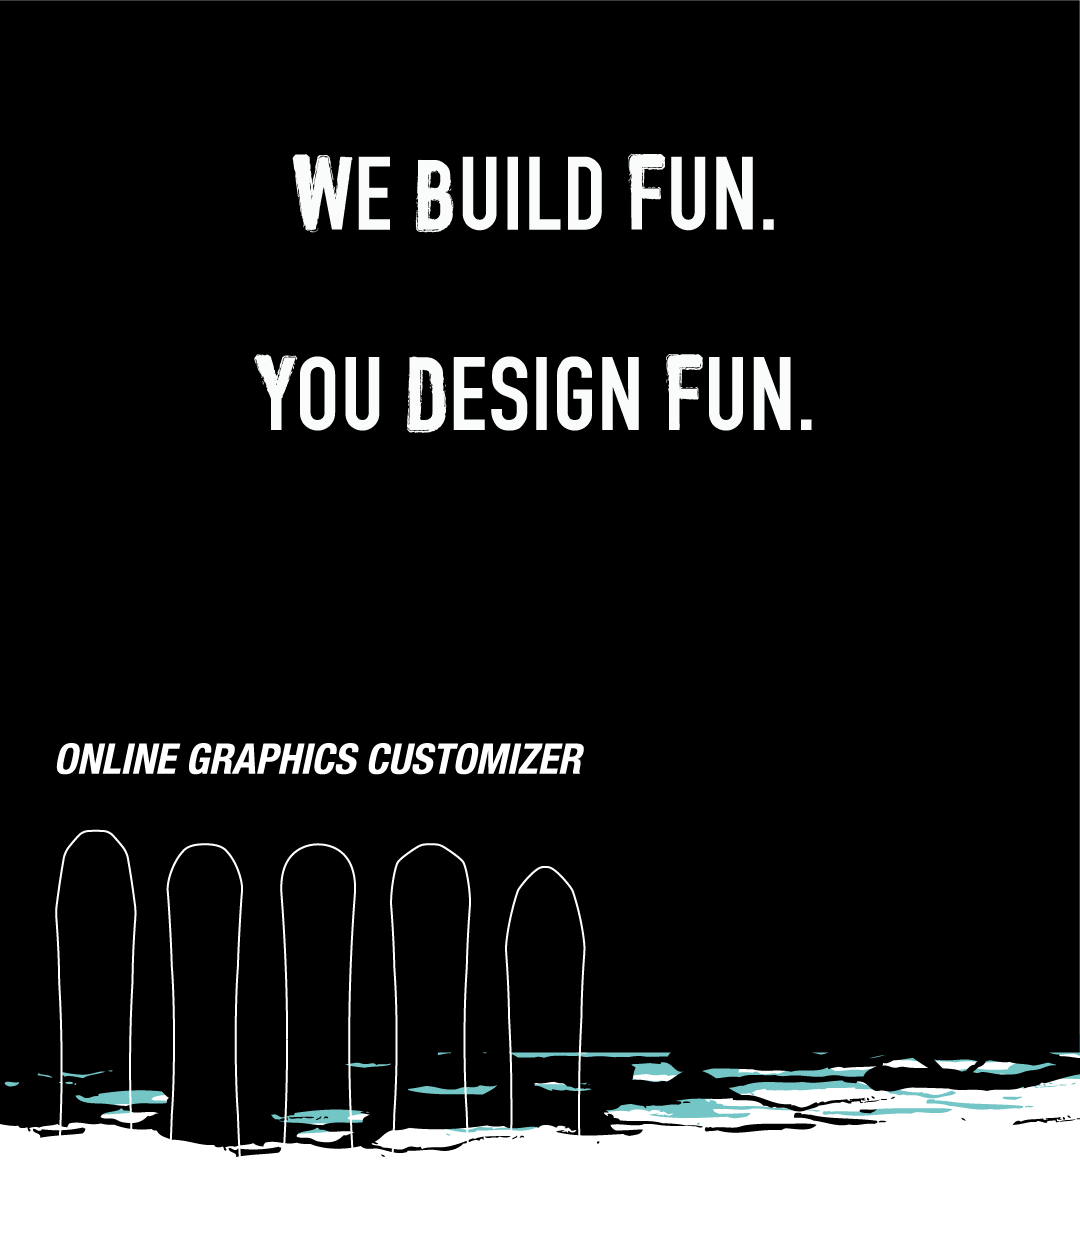 we build fun you design fun online graphics customizer